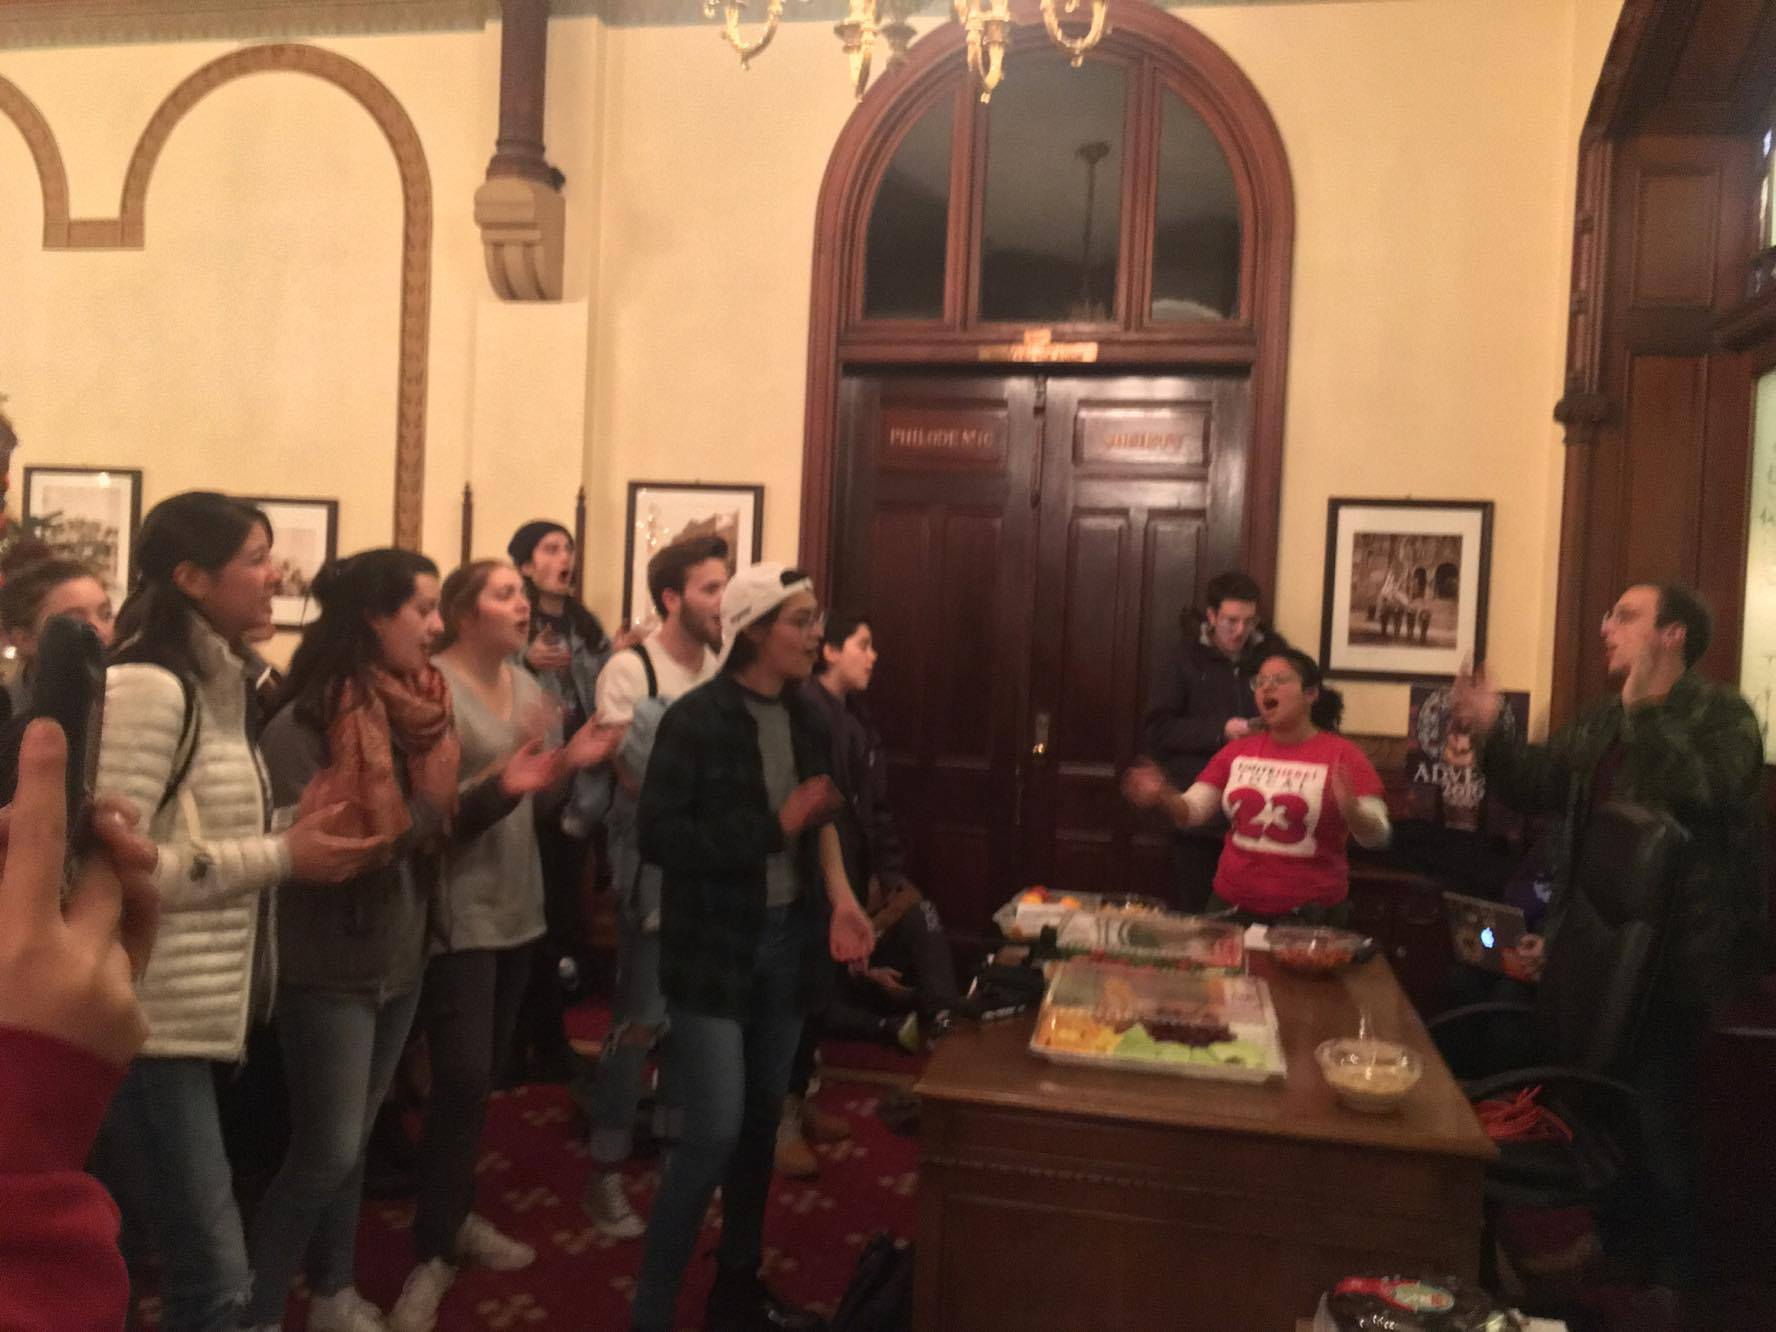 JEANINE SANTUCCCI/THE HOYA Students demonstrated outside University President John J. DeGioia's suite of offices this evening as GSC members met with Chief of Staff Joe Ferrara and Vice President for Student Affairs Todd Olson.